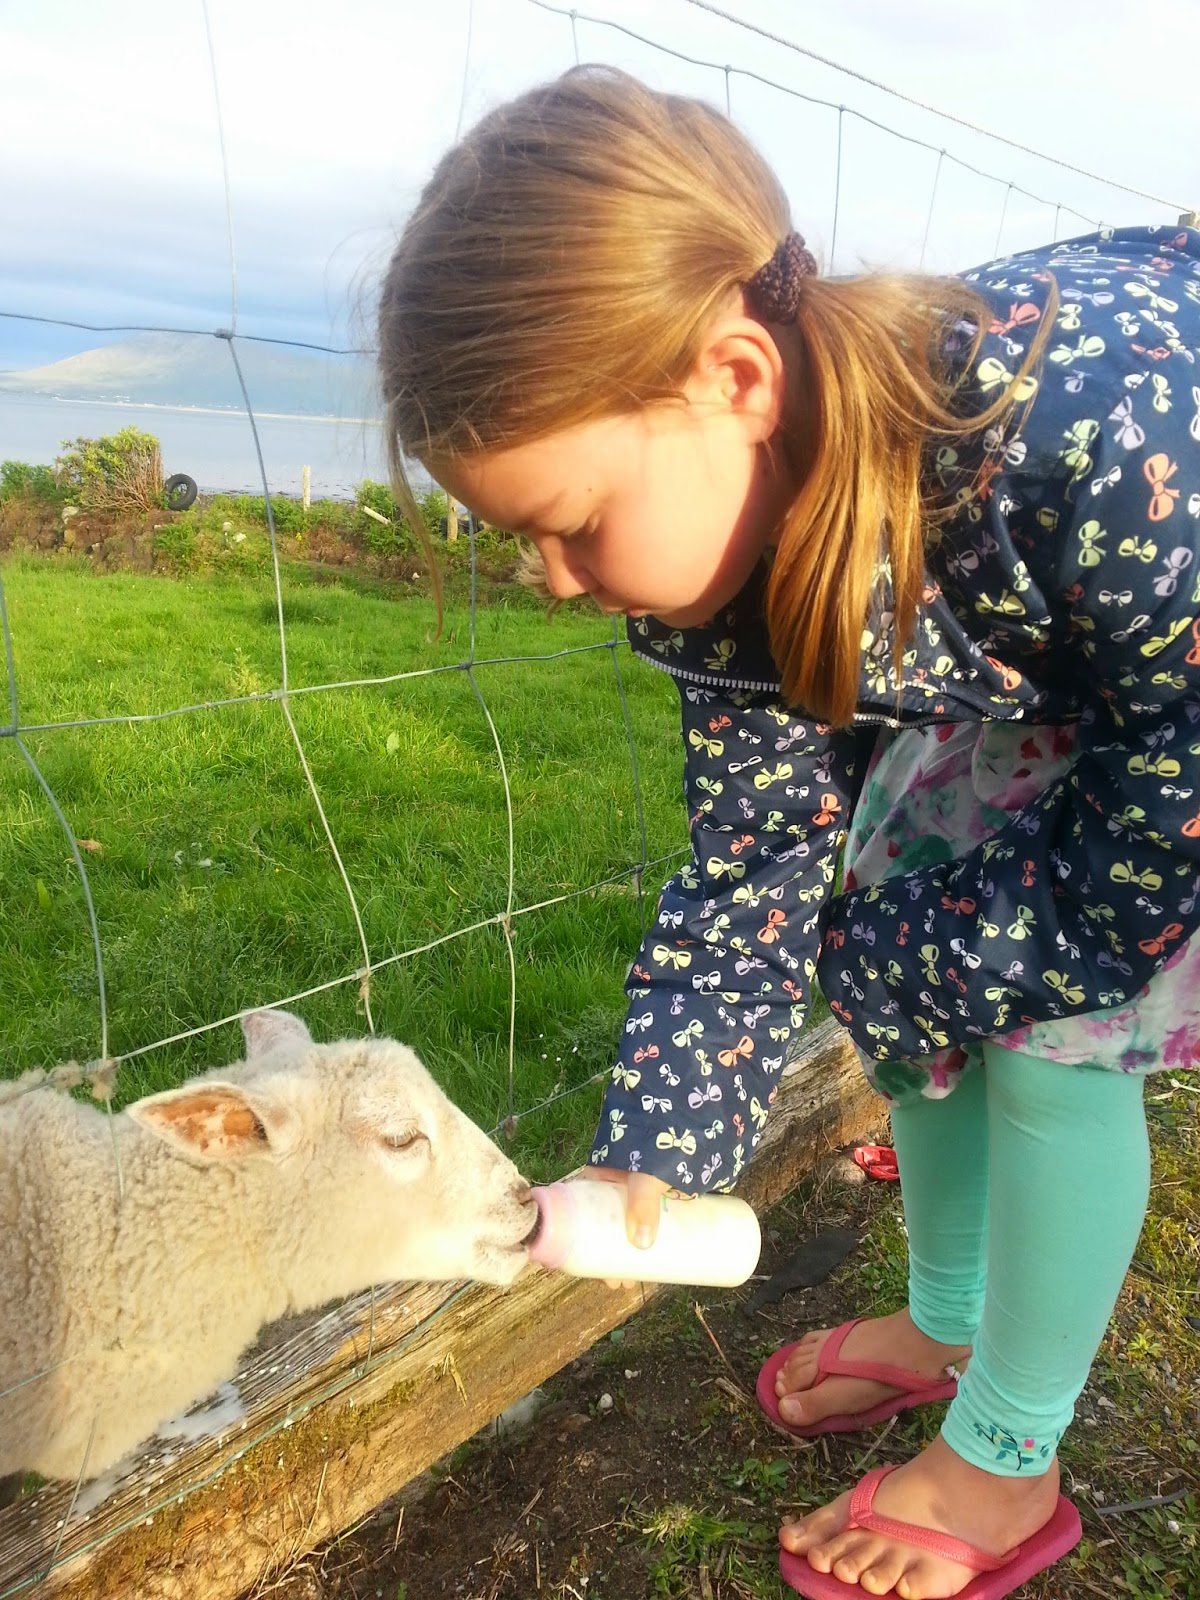 photo of lamb being given a bottle by young girl